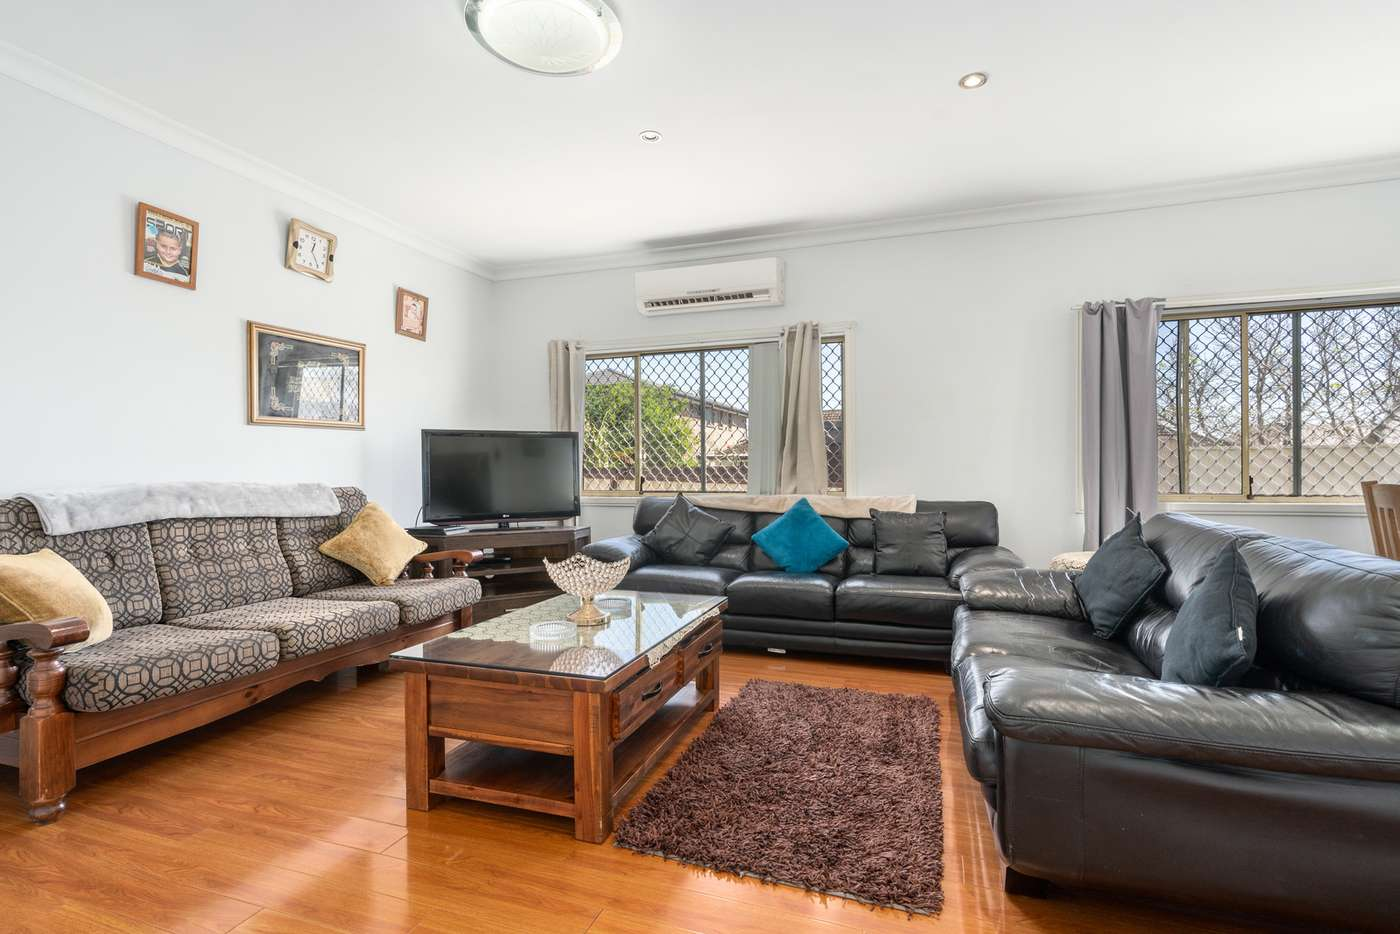 Sixth view of Homely house listing, 35 Langtry Avenue, Auburn NSW 2144